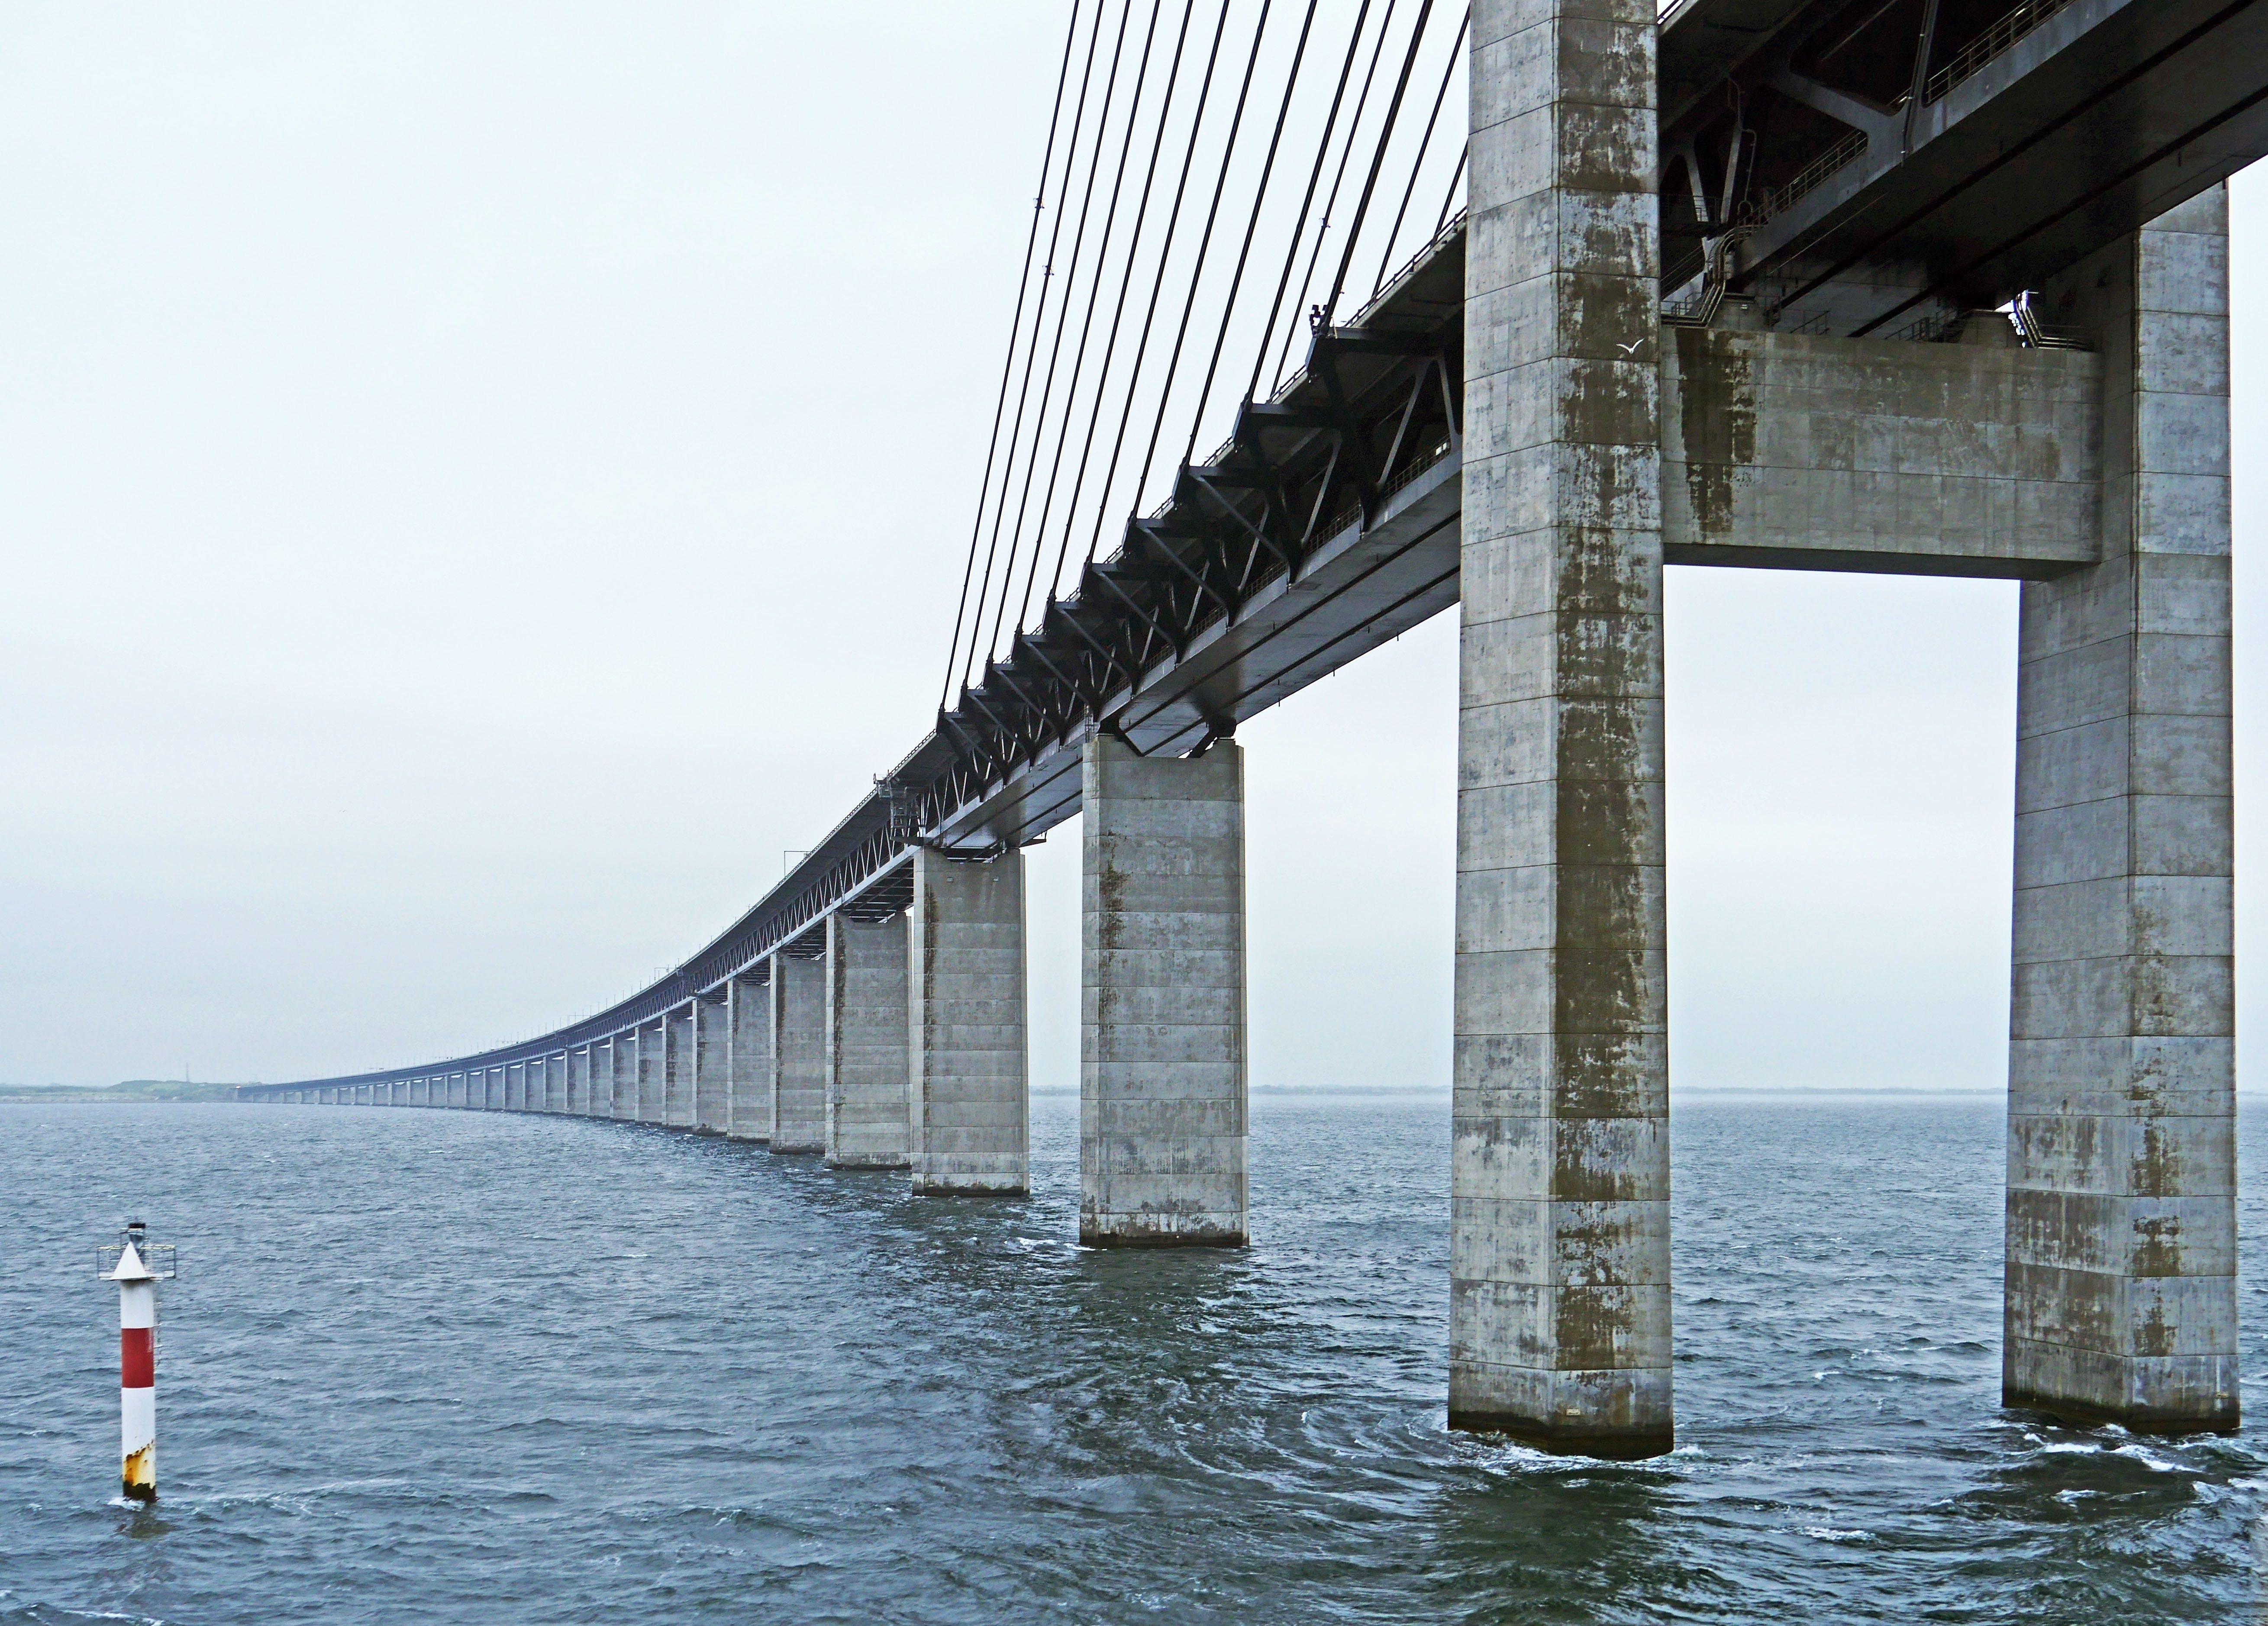 Baltic Sea, cable-stayed bridge, carrier